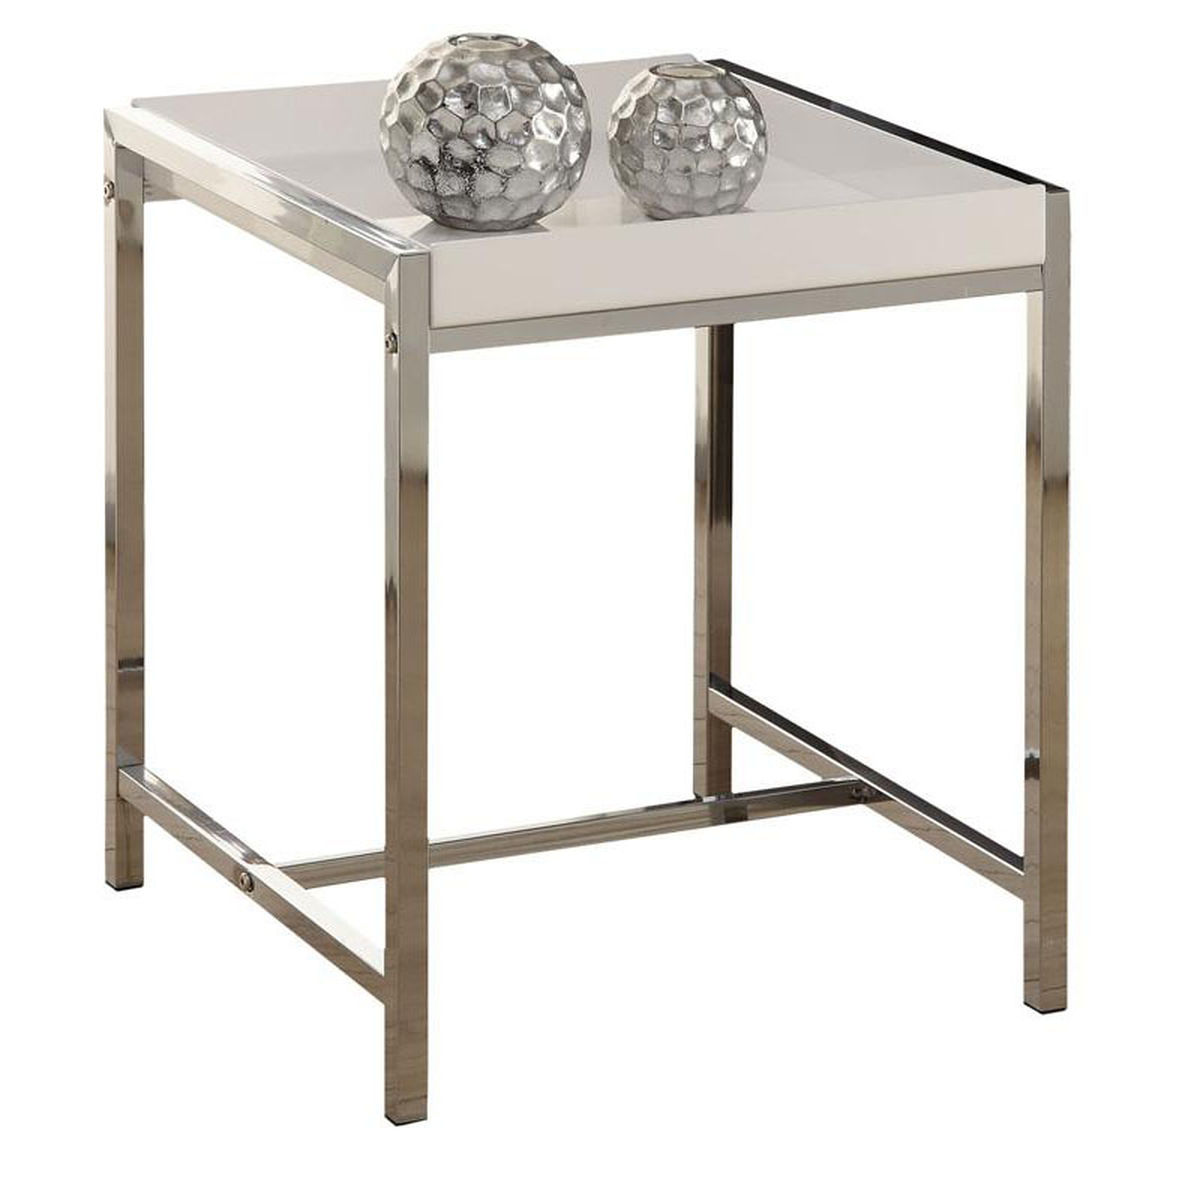 white acrylic top accent table bizchair monarch specialties msp main our chrome with all glass side garden chairs set tall round kitchen wedding covers wood stump nautical rope